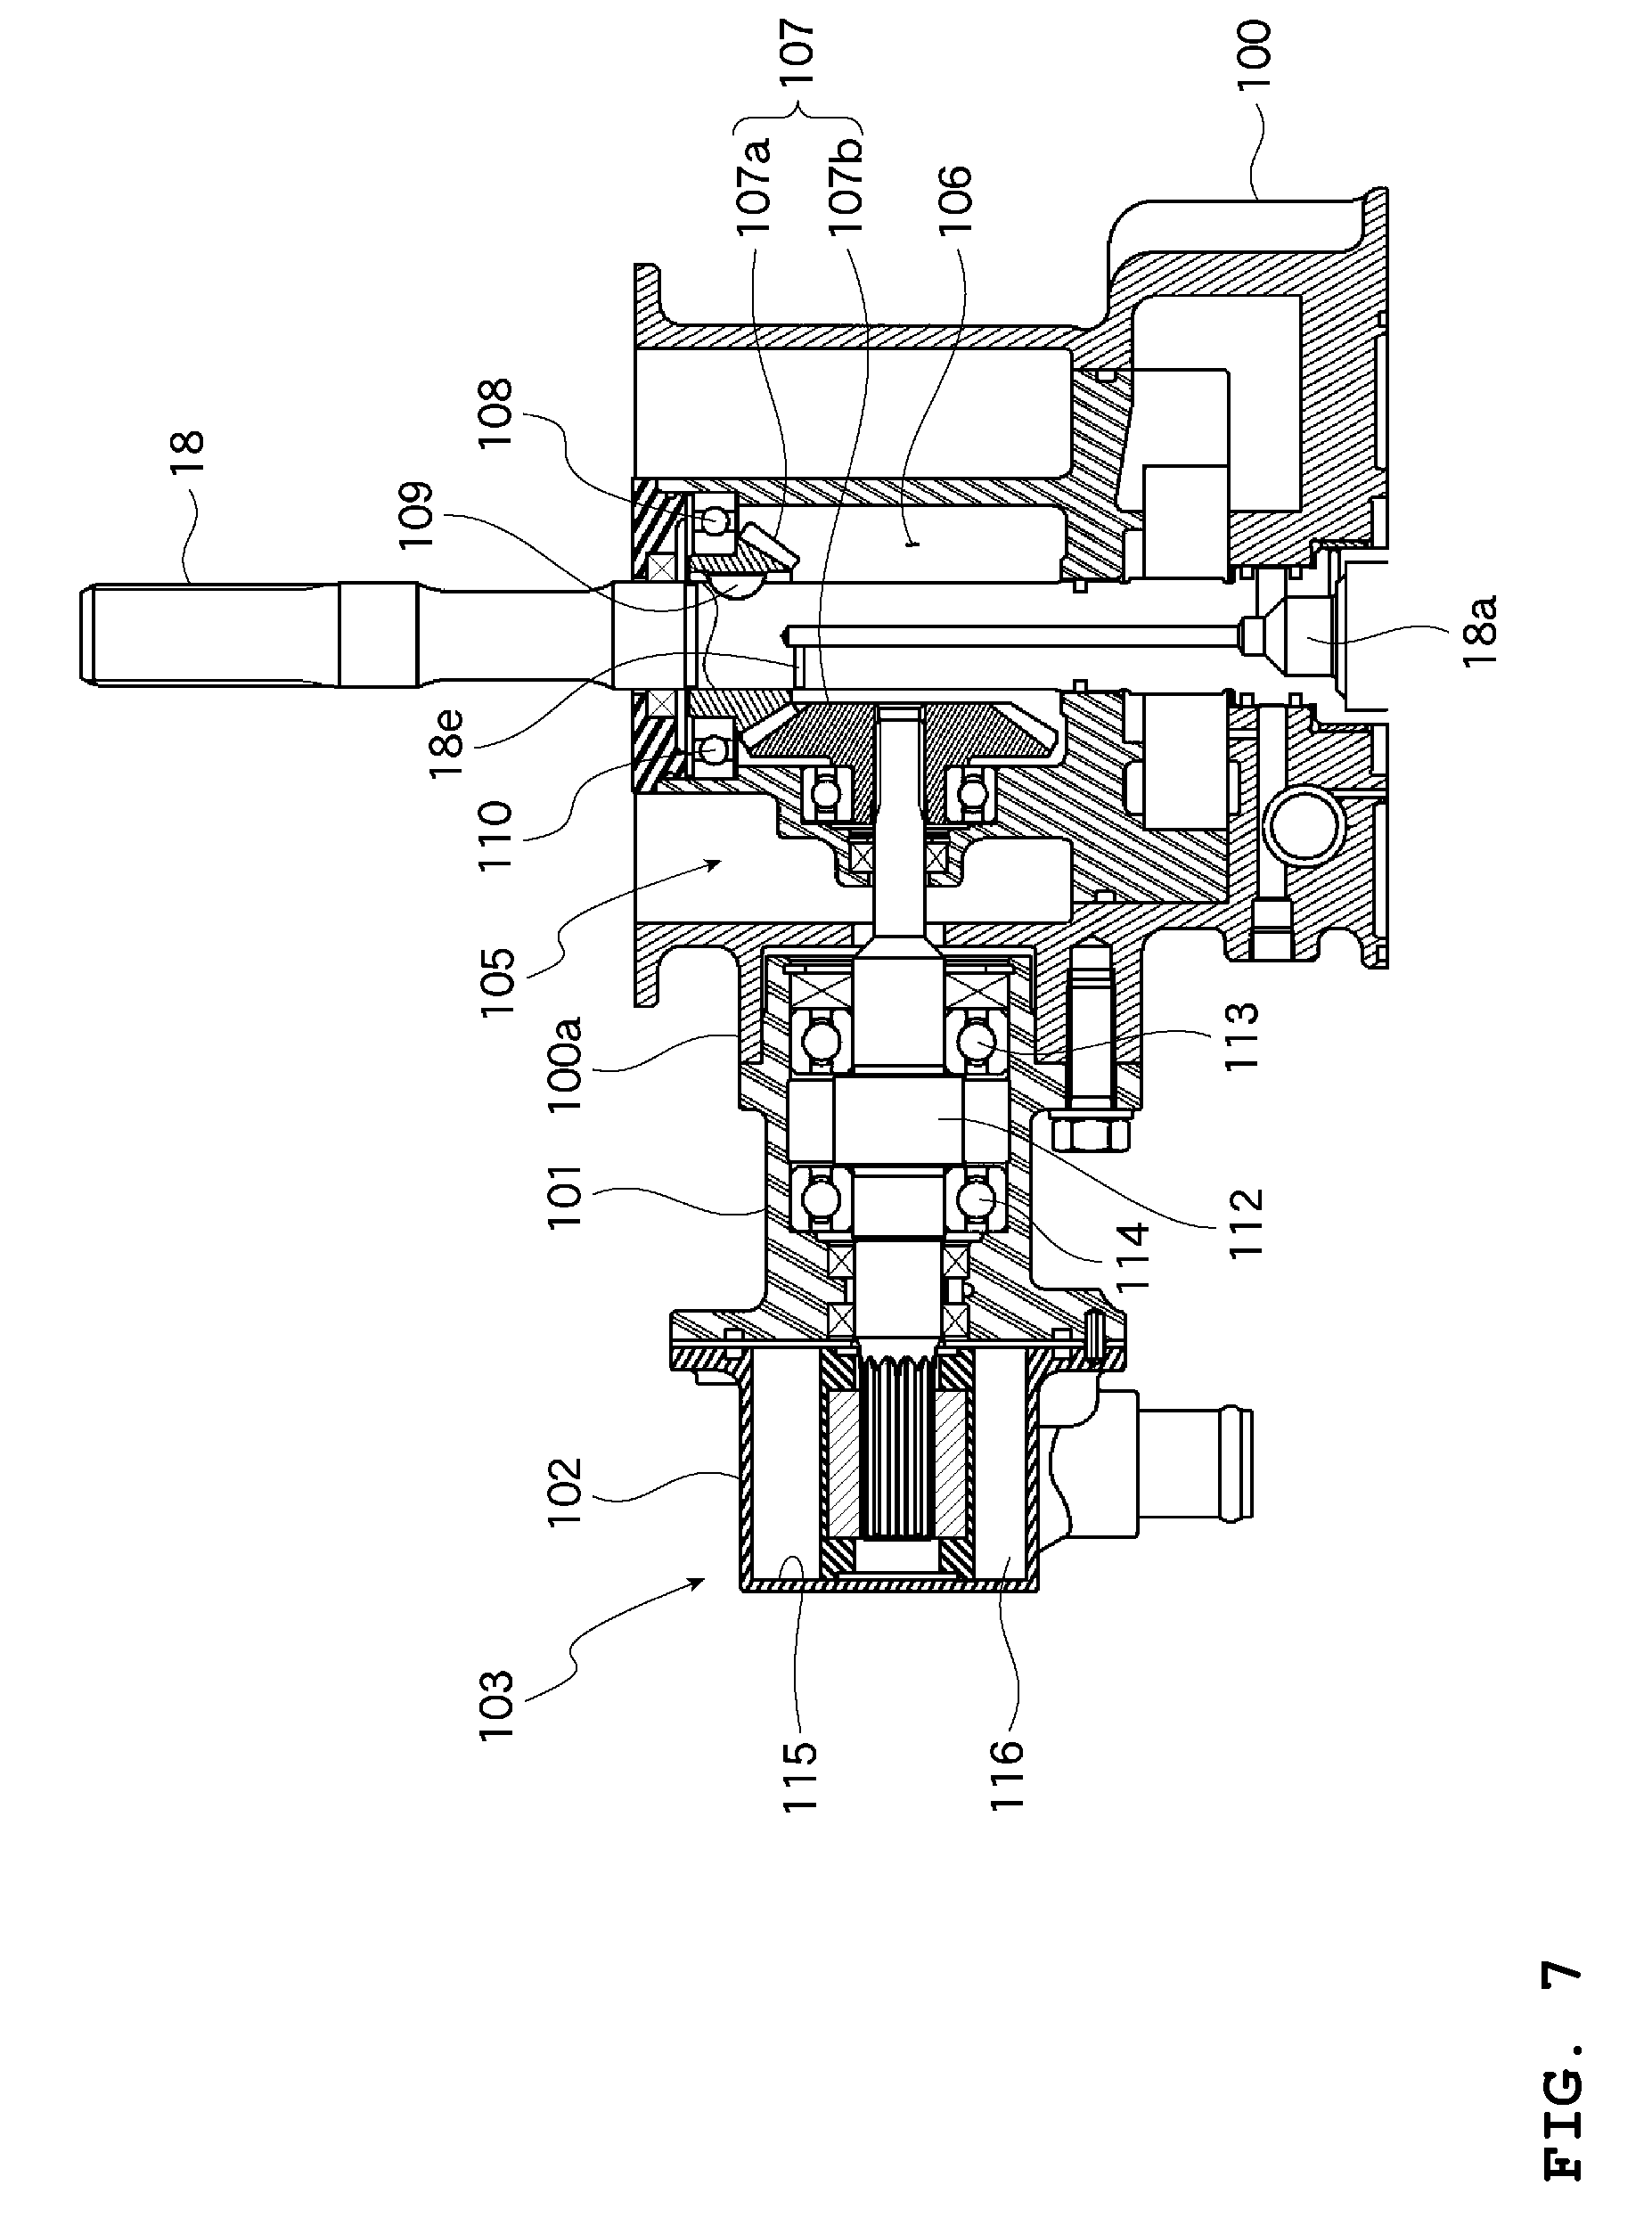 patent us20090163094 outboard motor google patentsMarine Transmission Diagrams As Well As Patent Us8715022 Marine Vessel #16